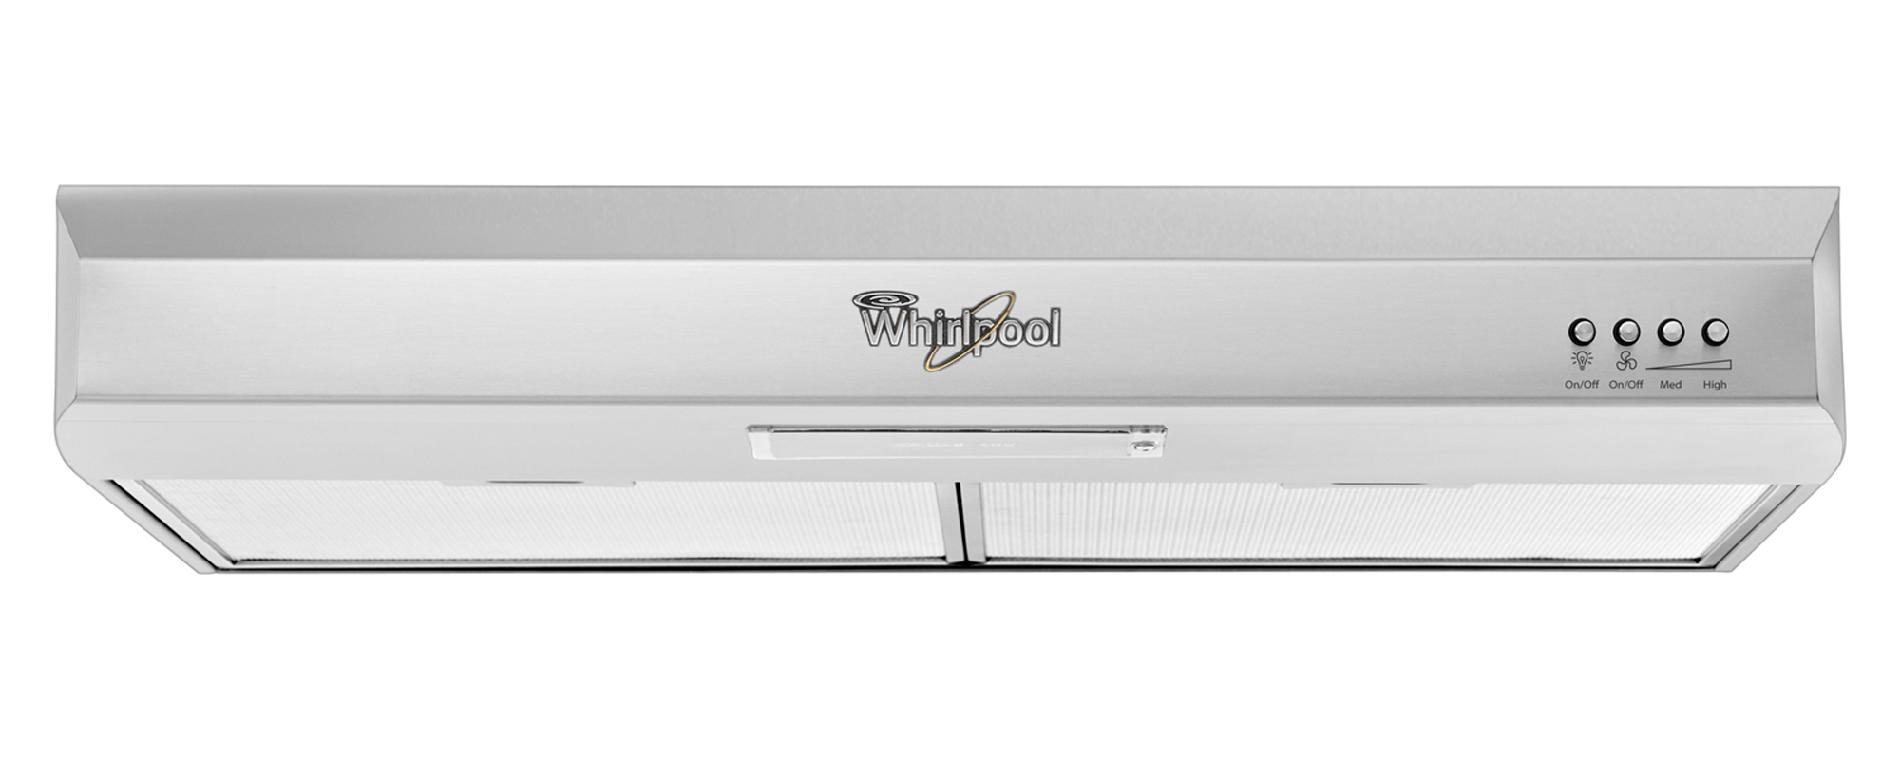 "Whirlpool Gold® 30"" Vented Under-Cabinet Range Hood - Stainless Steel"